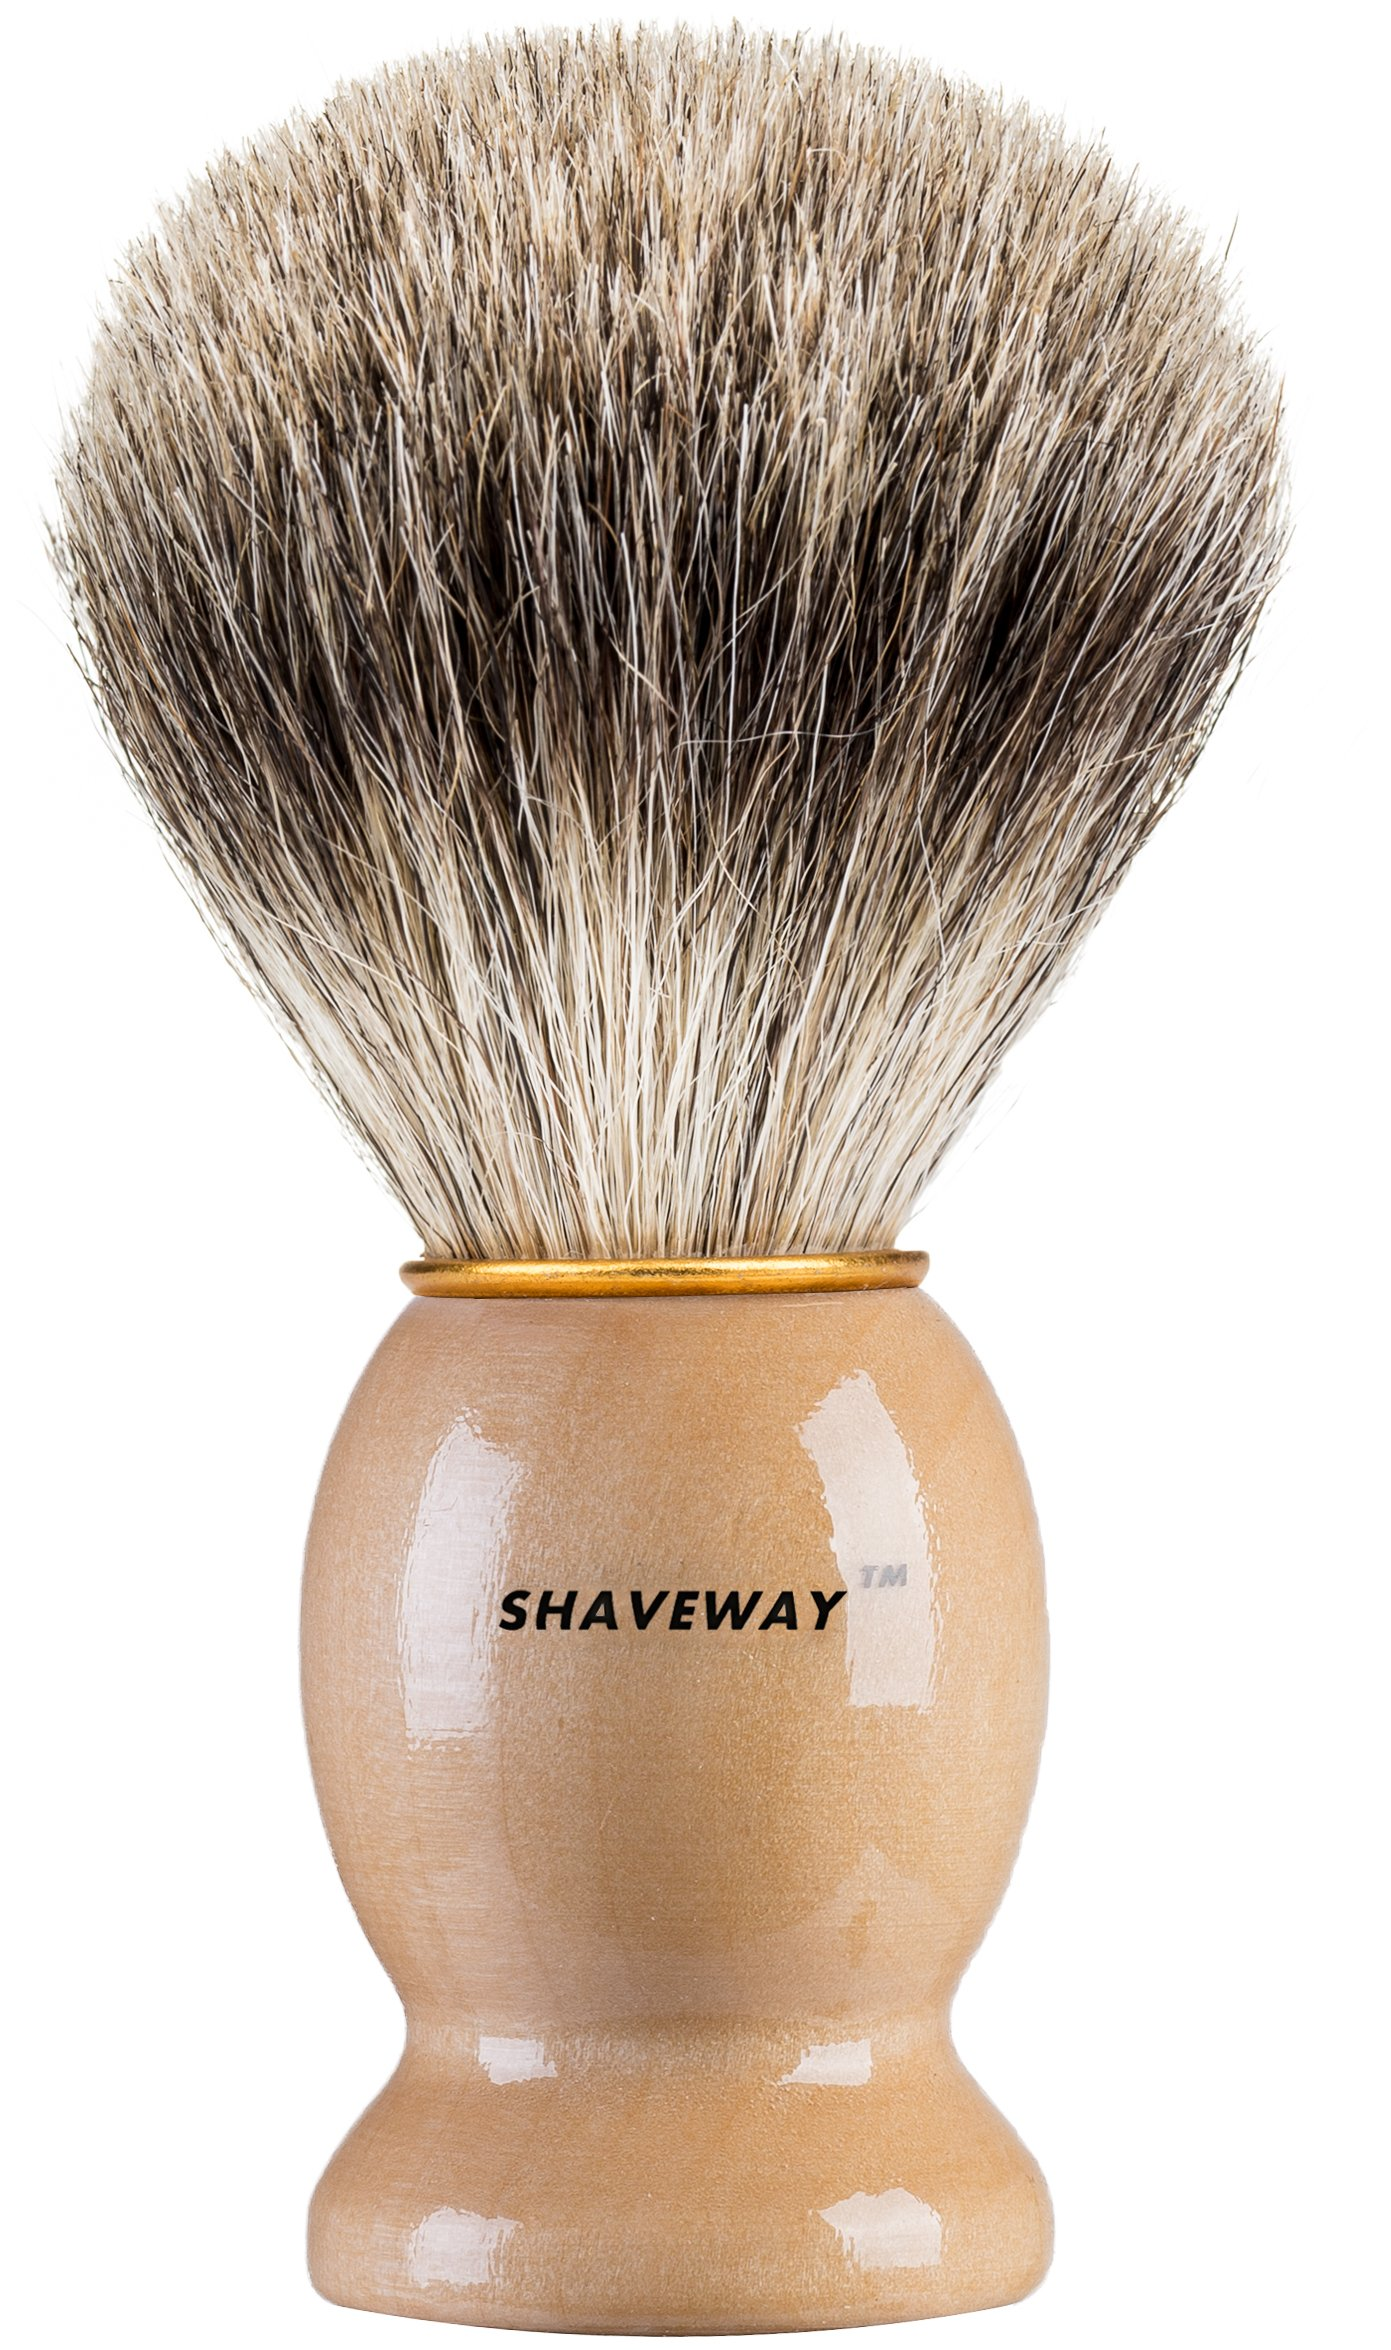 Shaveway 100% Original Pure Badger Shaving Brush. Engineered for the Best Shave of Your Life.For all methods,Safety Razor,Double Edge Razor,Staight Razor or Shaving Razor, This is the Best Badger Brush.